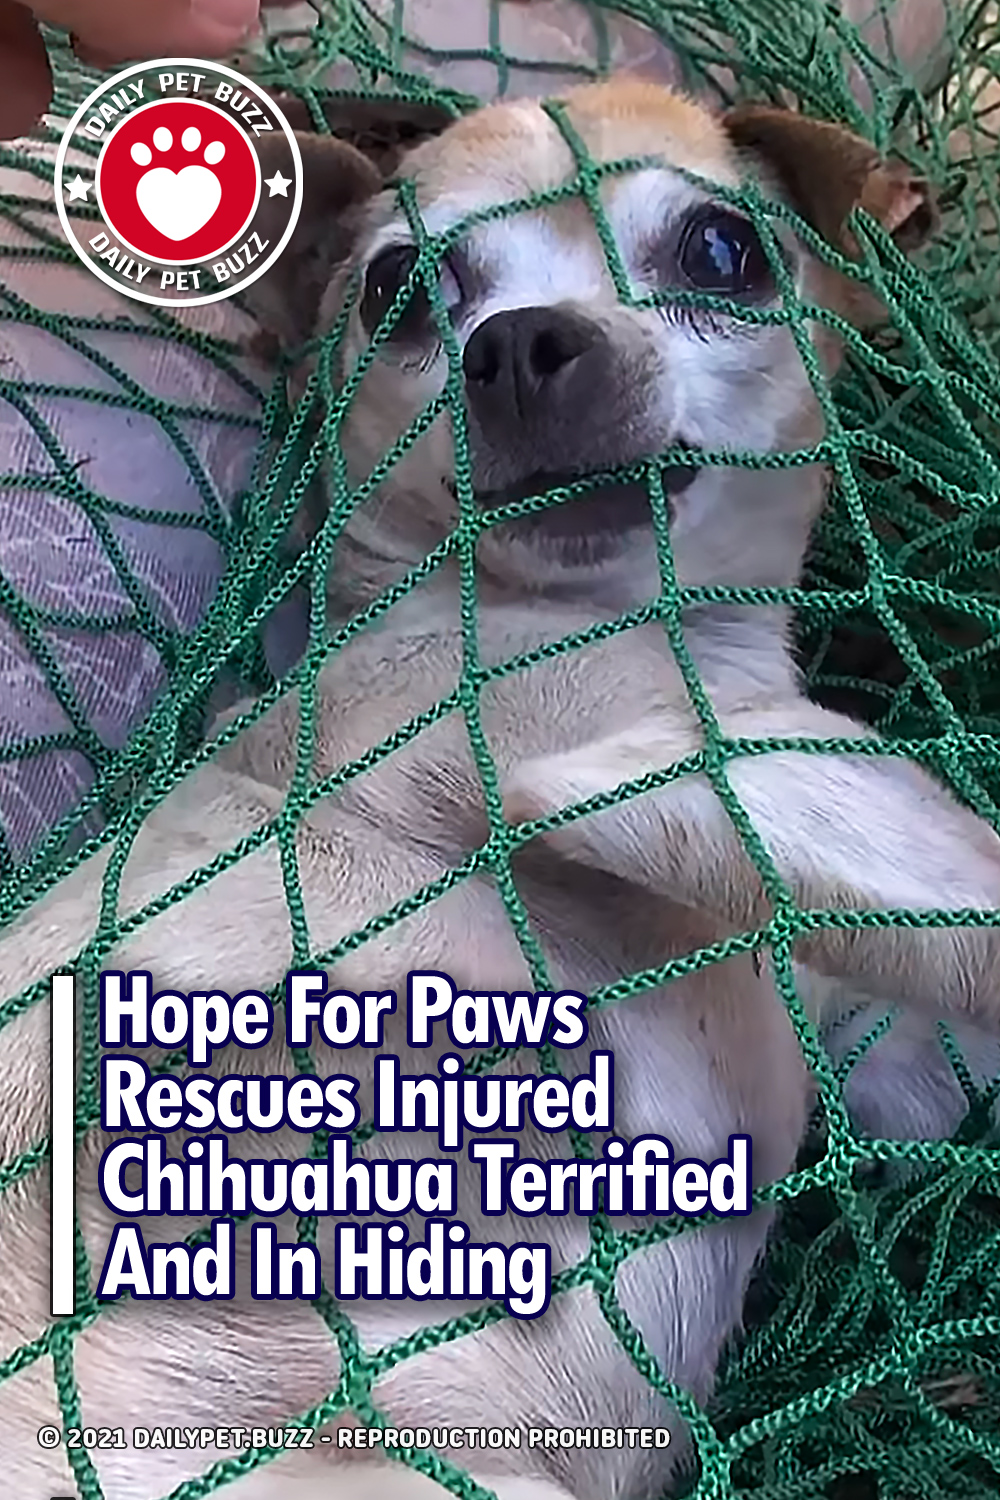 Hope For Paws Rescues Injured Chihuahua Terrified And In Hiding